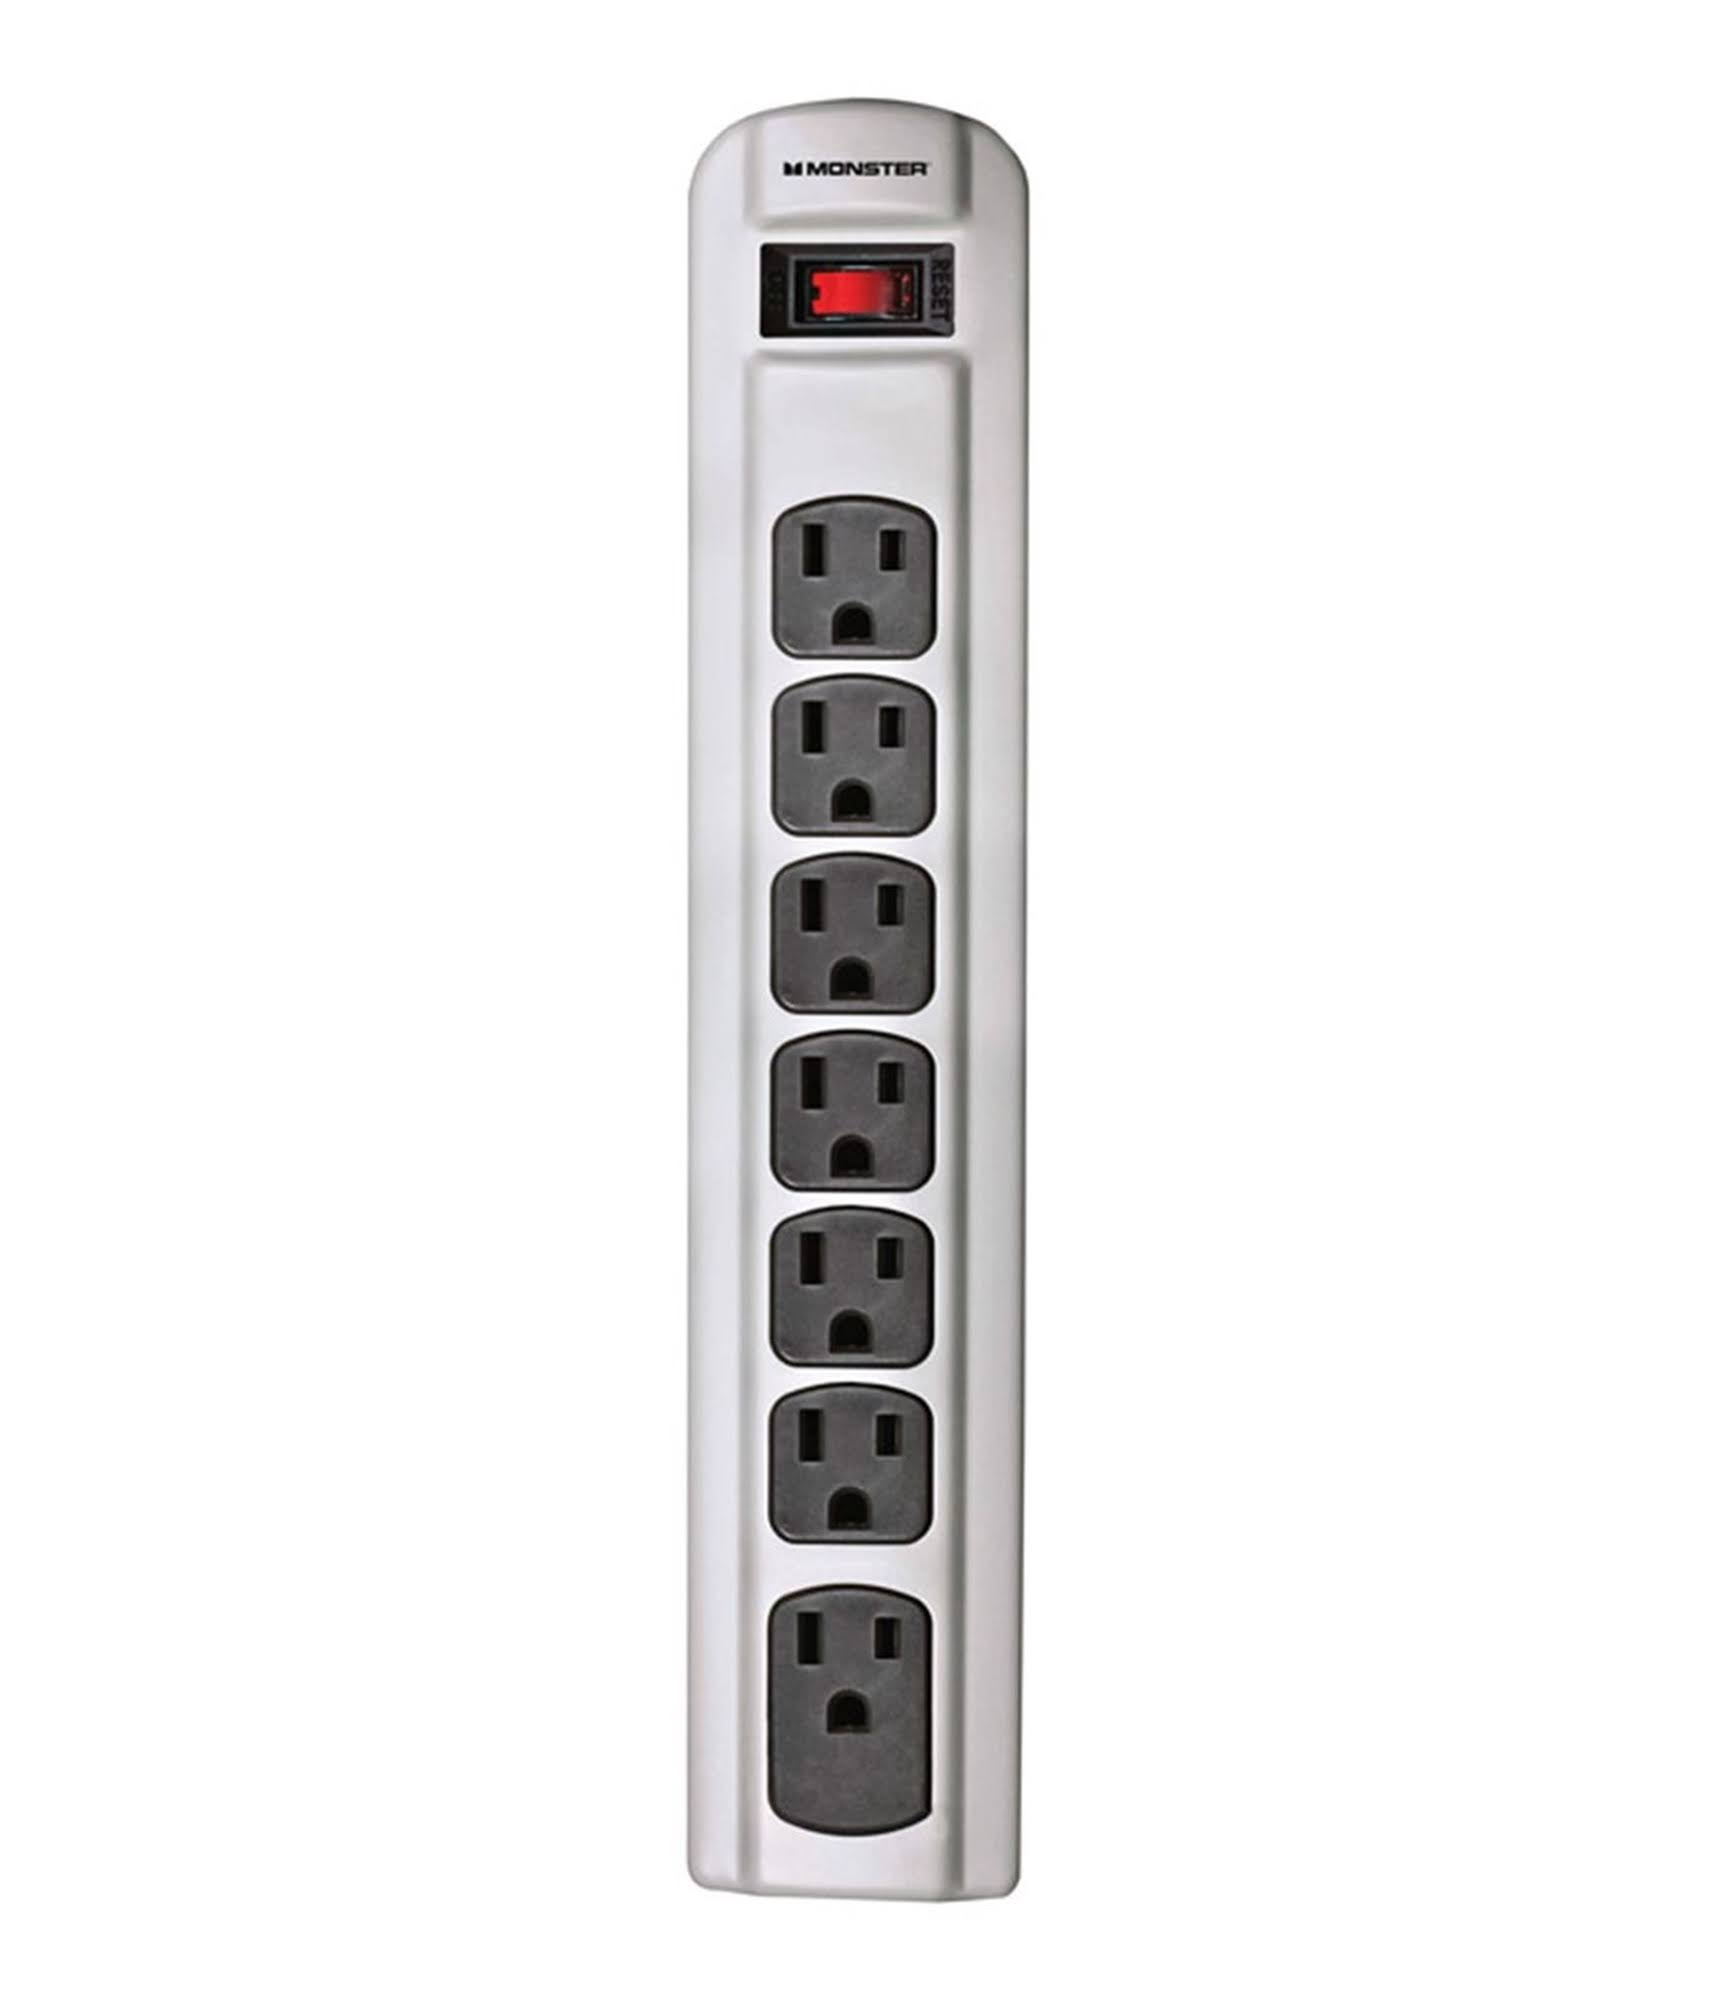 Monster Cable 7 Outlets Power Strip - Grey, 4'